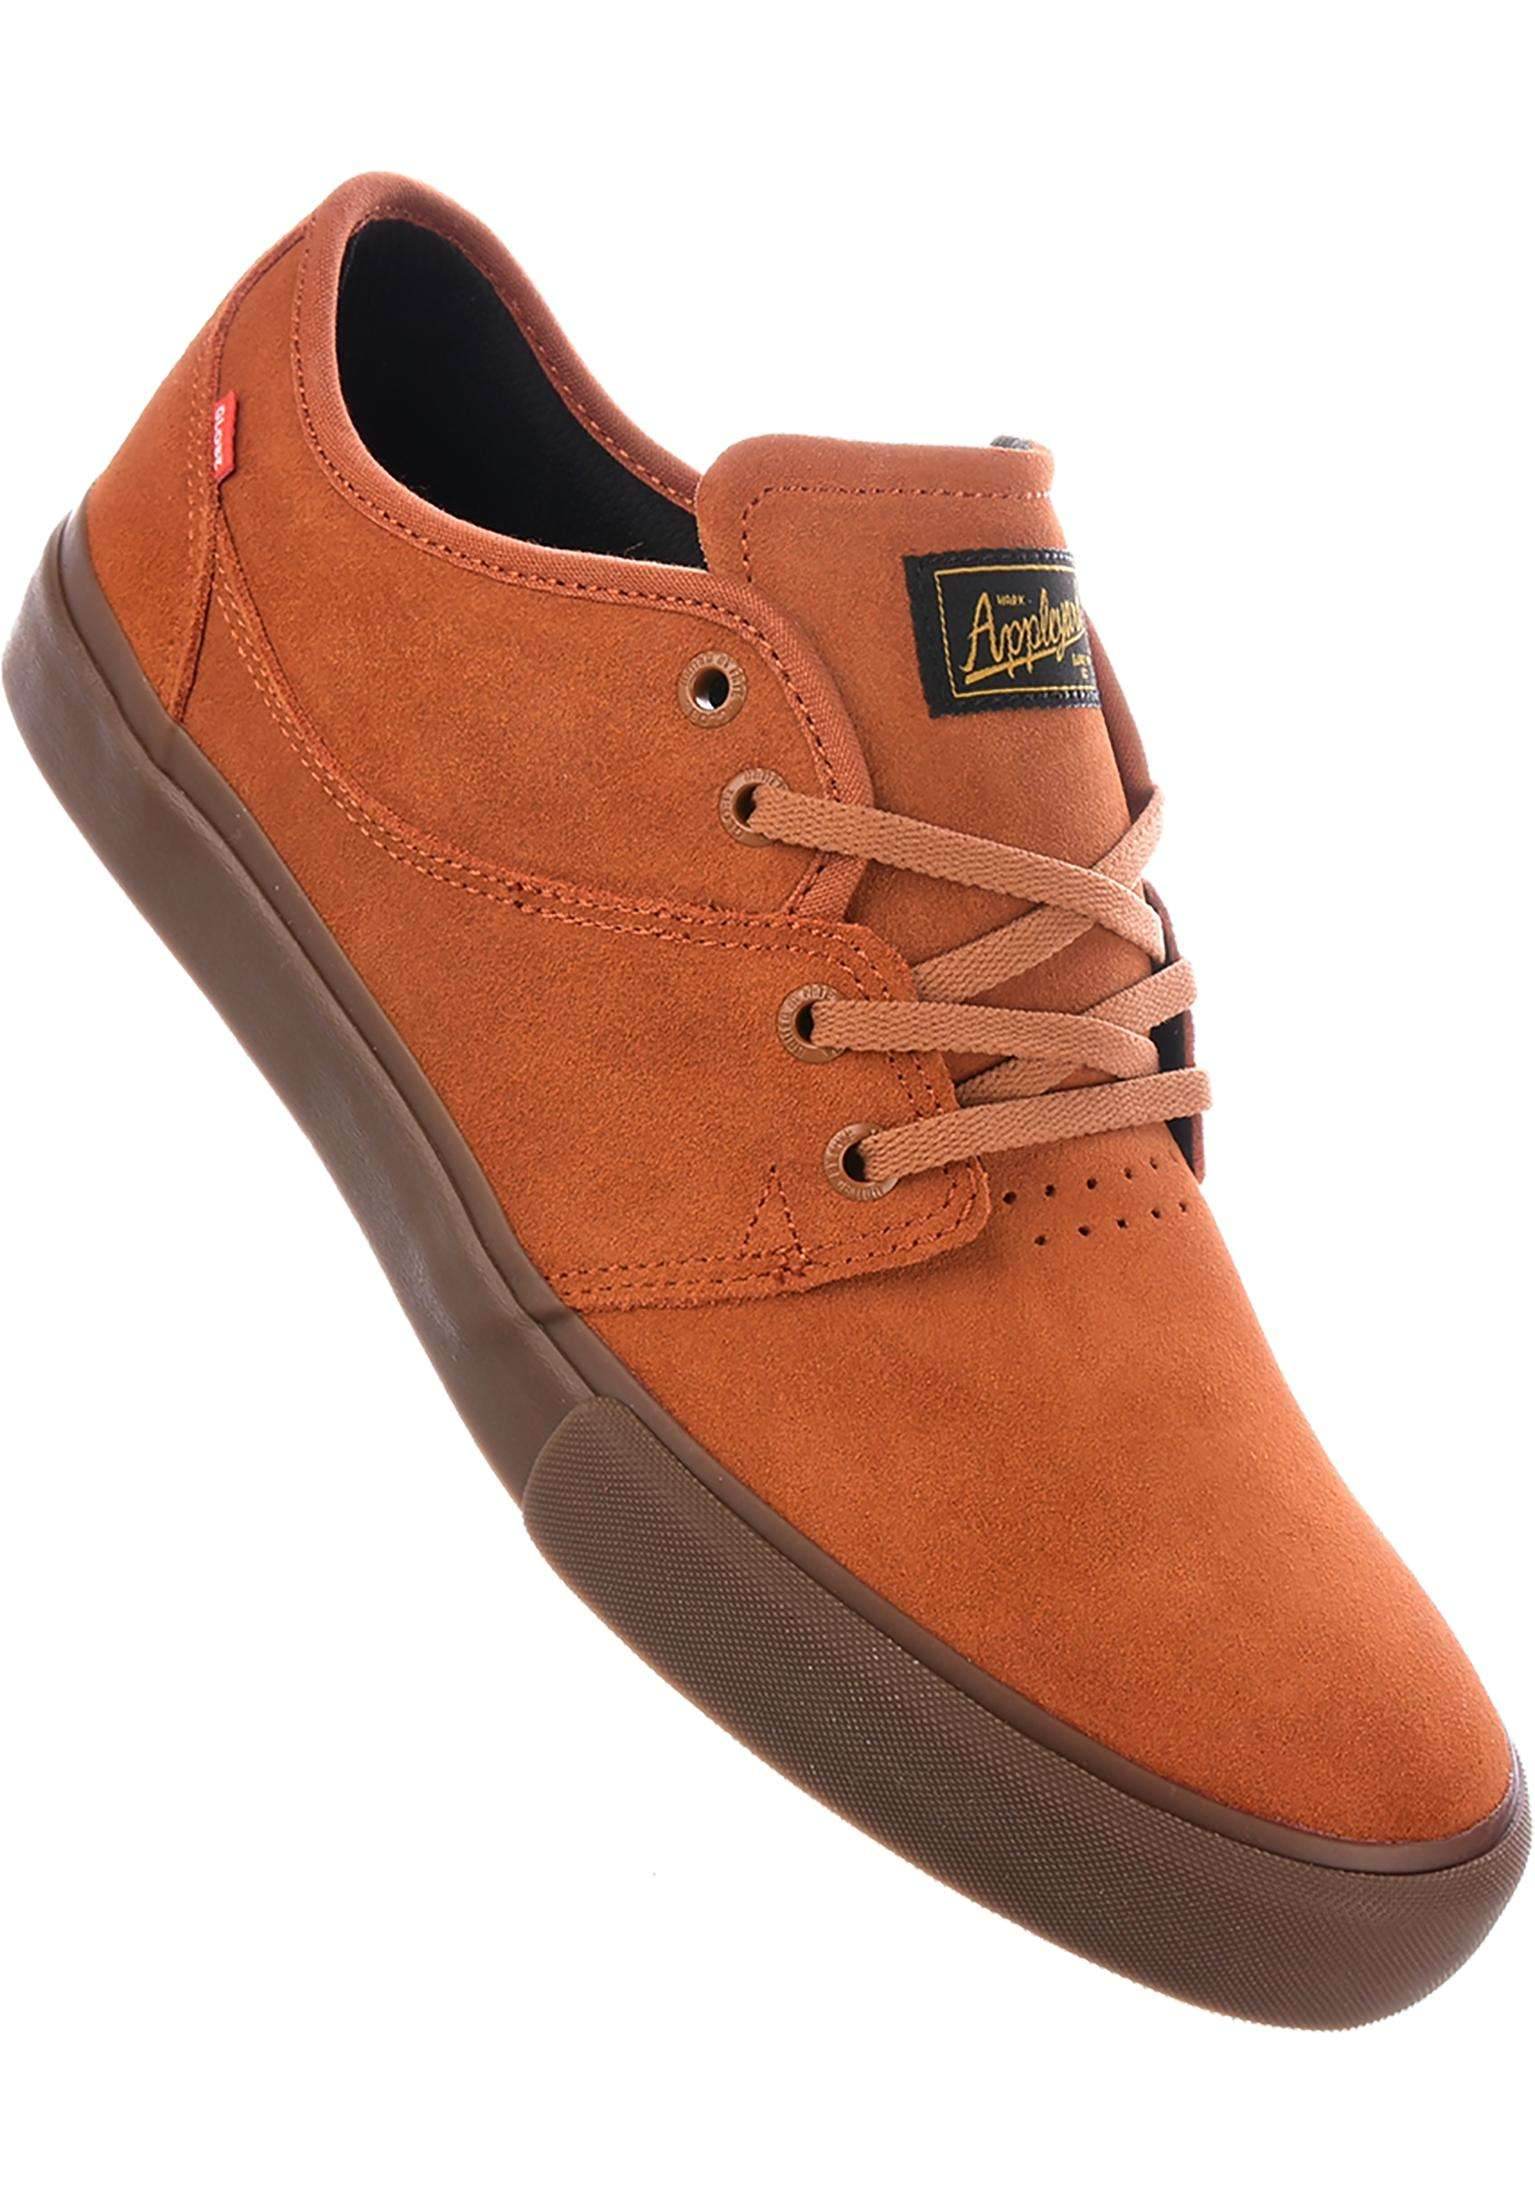 360055d873 Mahalo Globe All Shoes in rust-tobacco for Men